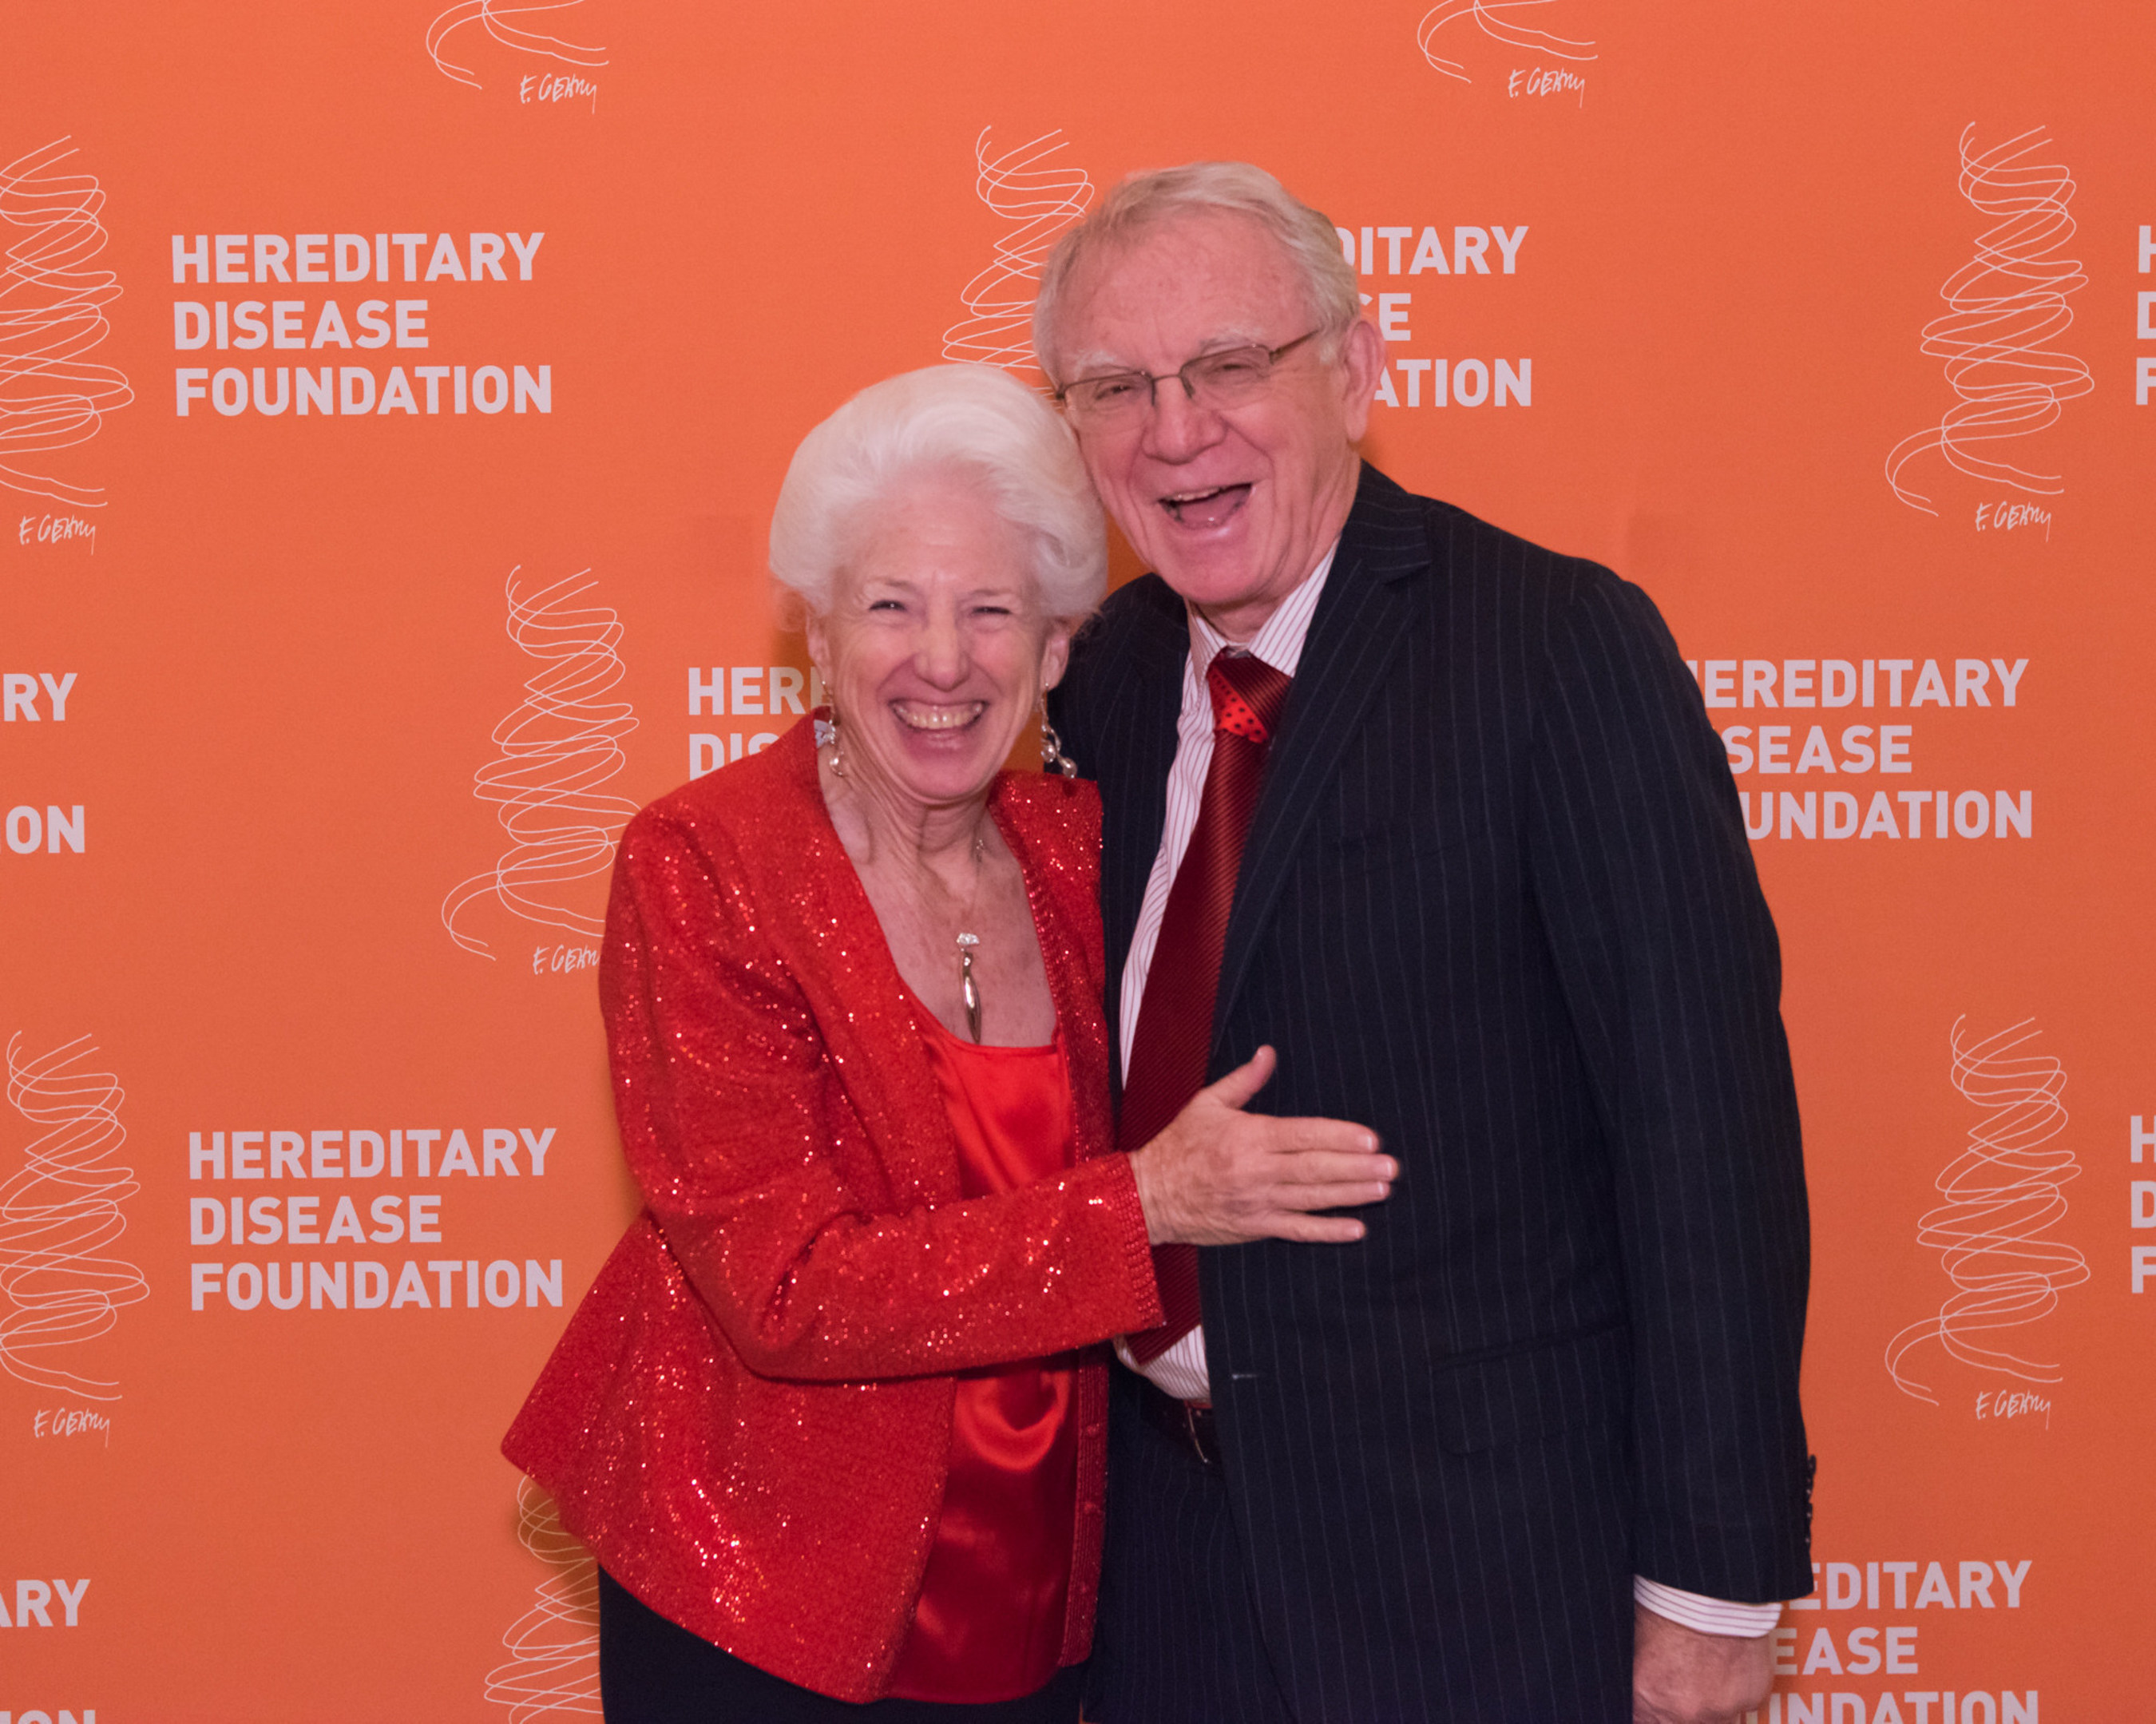 Dr. Nancy Wexler and Dr. Herbert Pardes at the Hereditary Disease Foundation Symposium and Dinner in New York City on November 9th. The event raised $1.2 million to fight Huntington's Disease and other brain disorders.